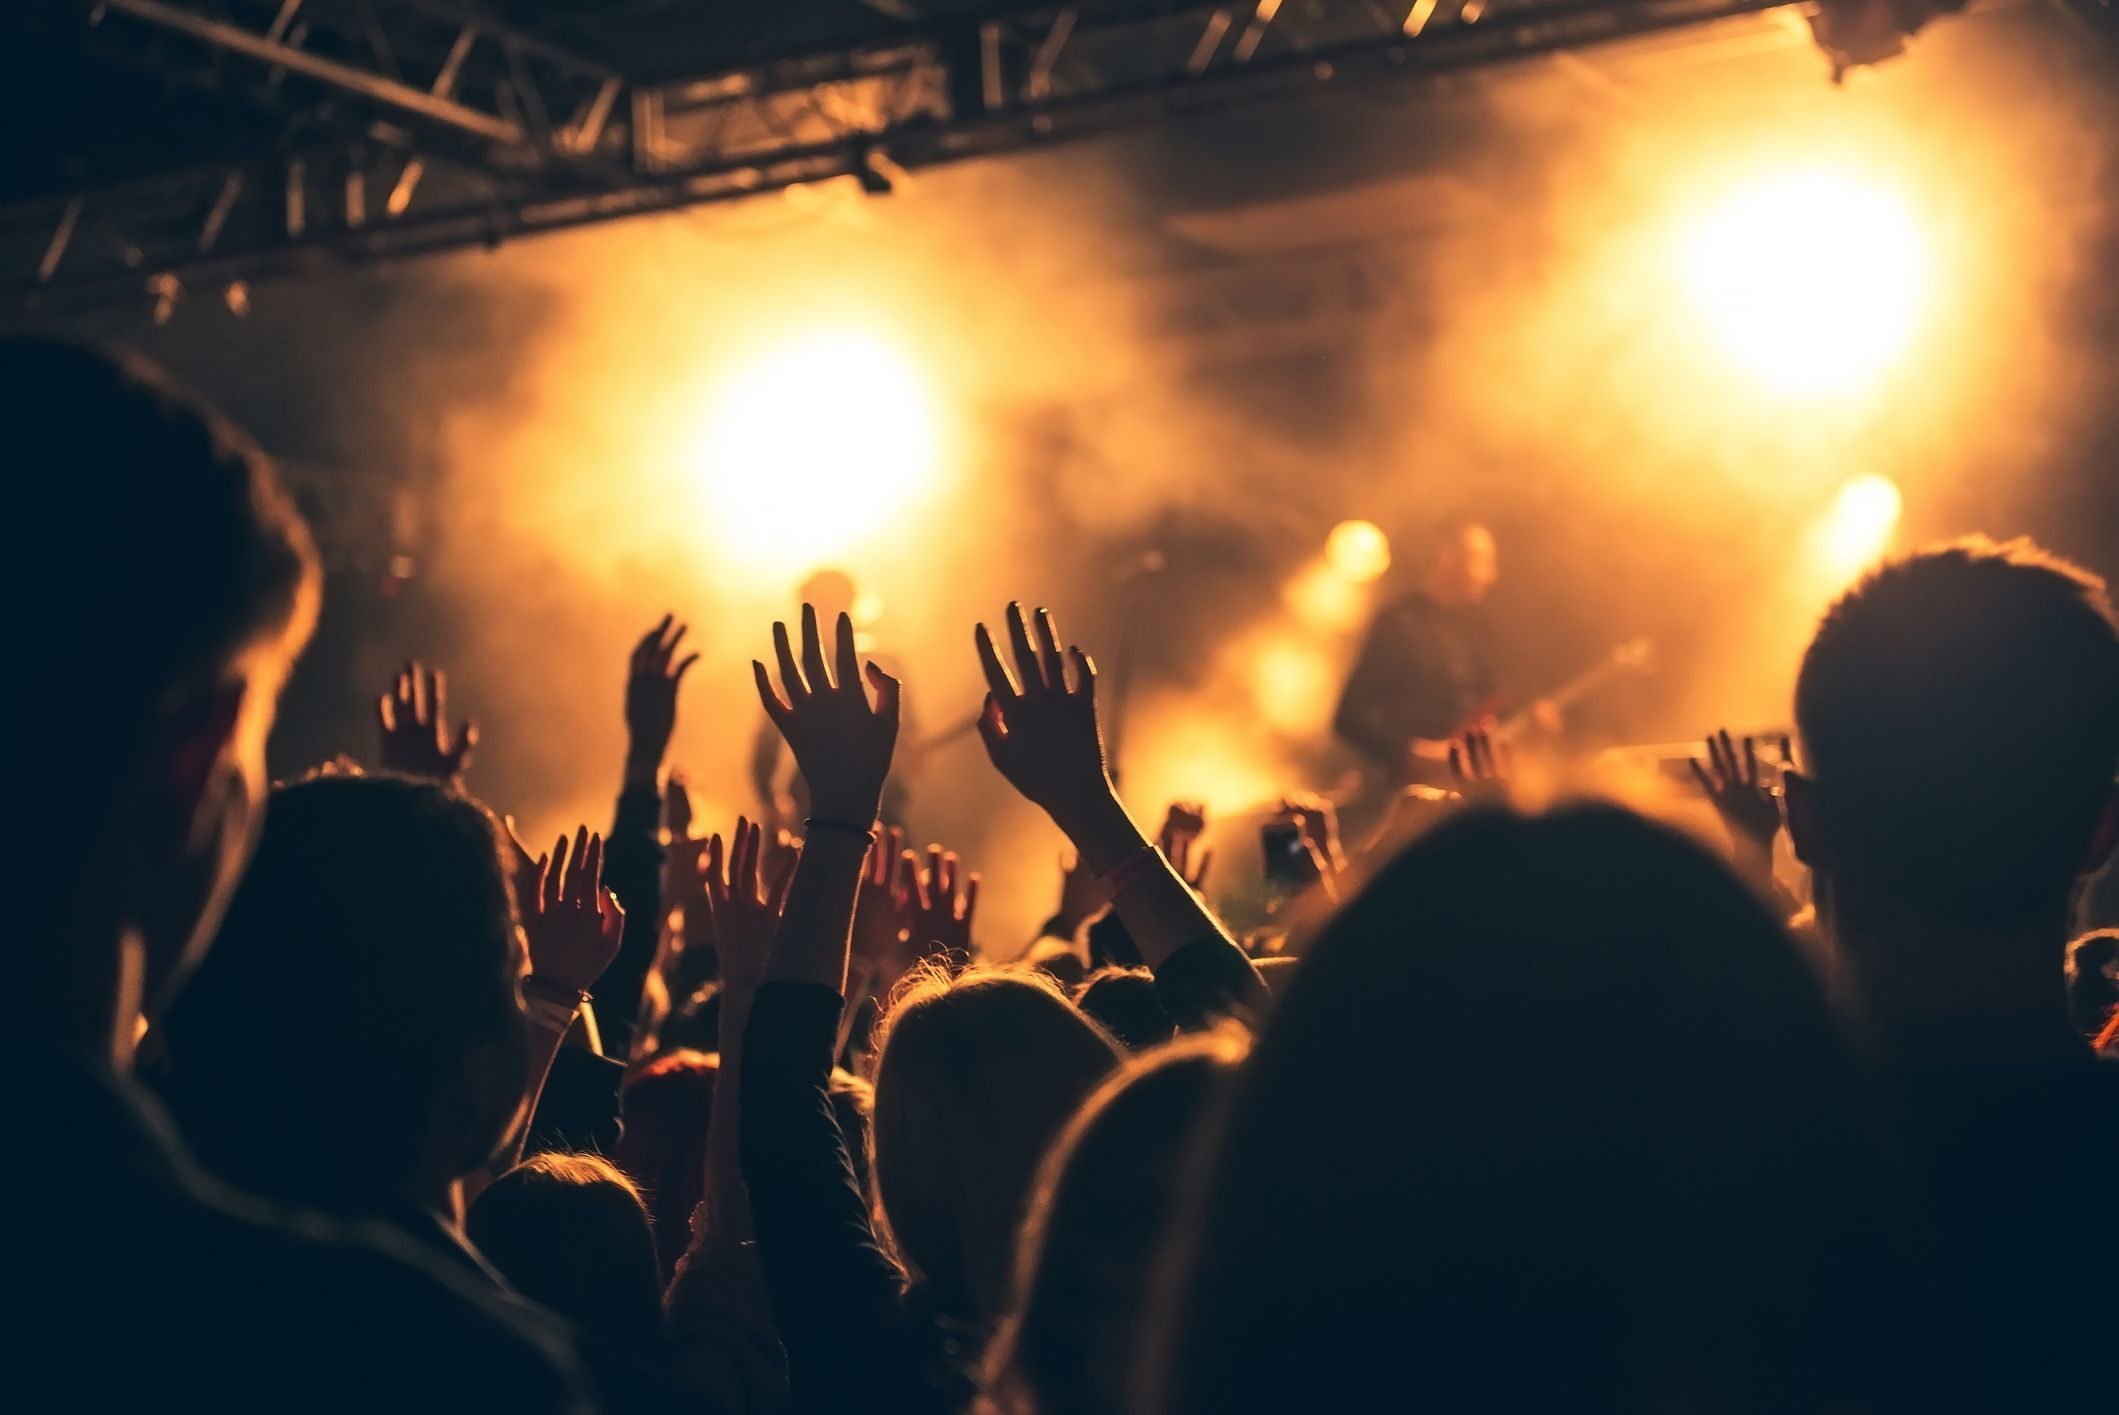 Ticket tours continue to be a nuisance (iStock)